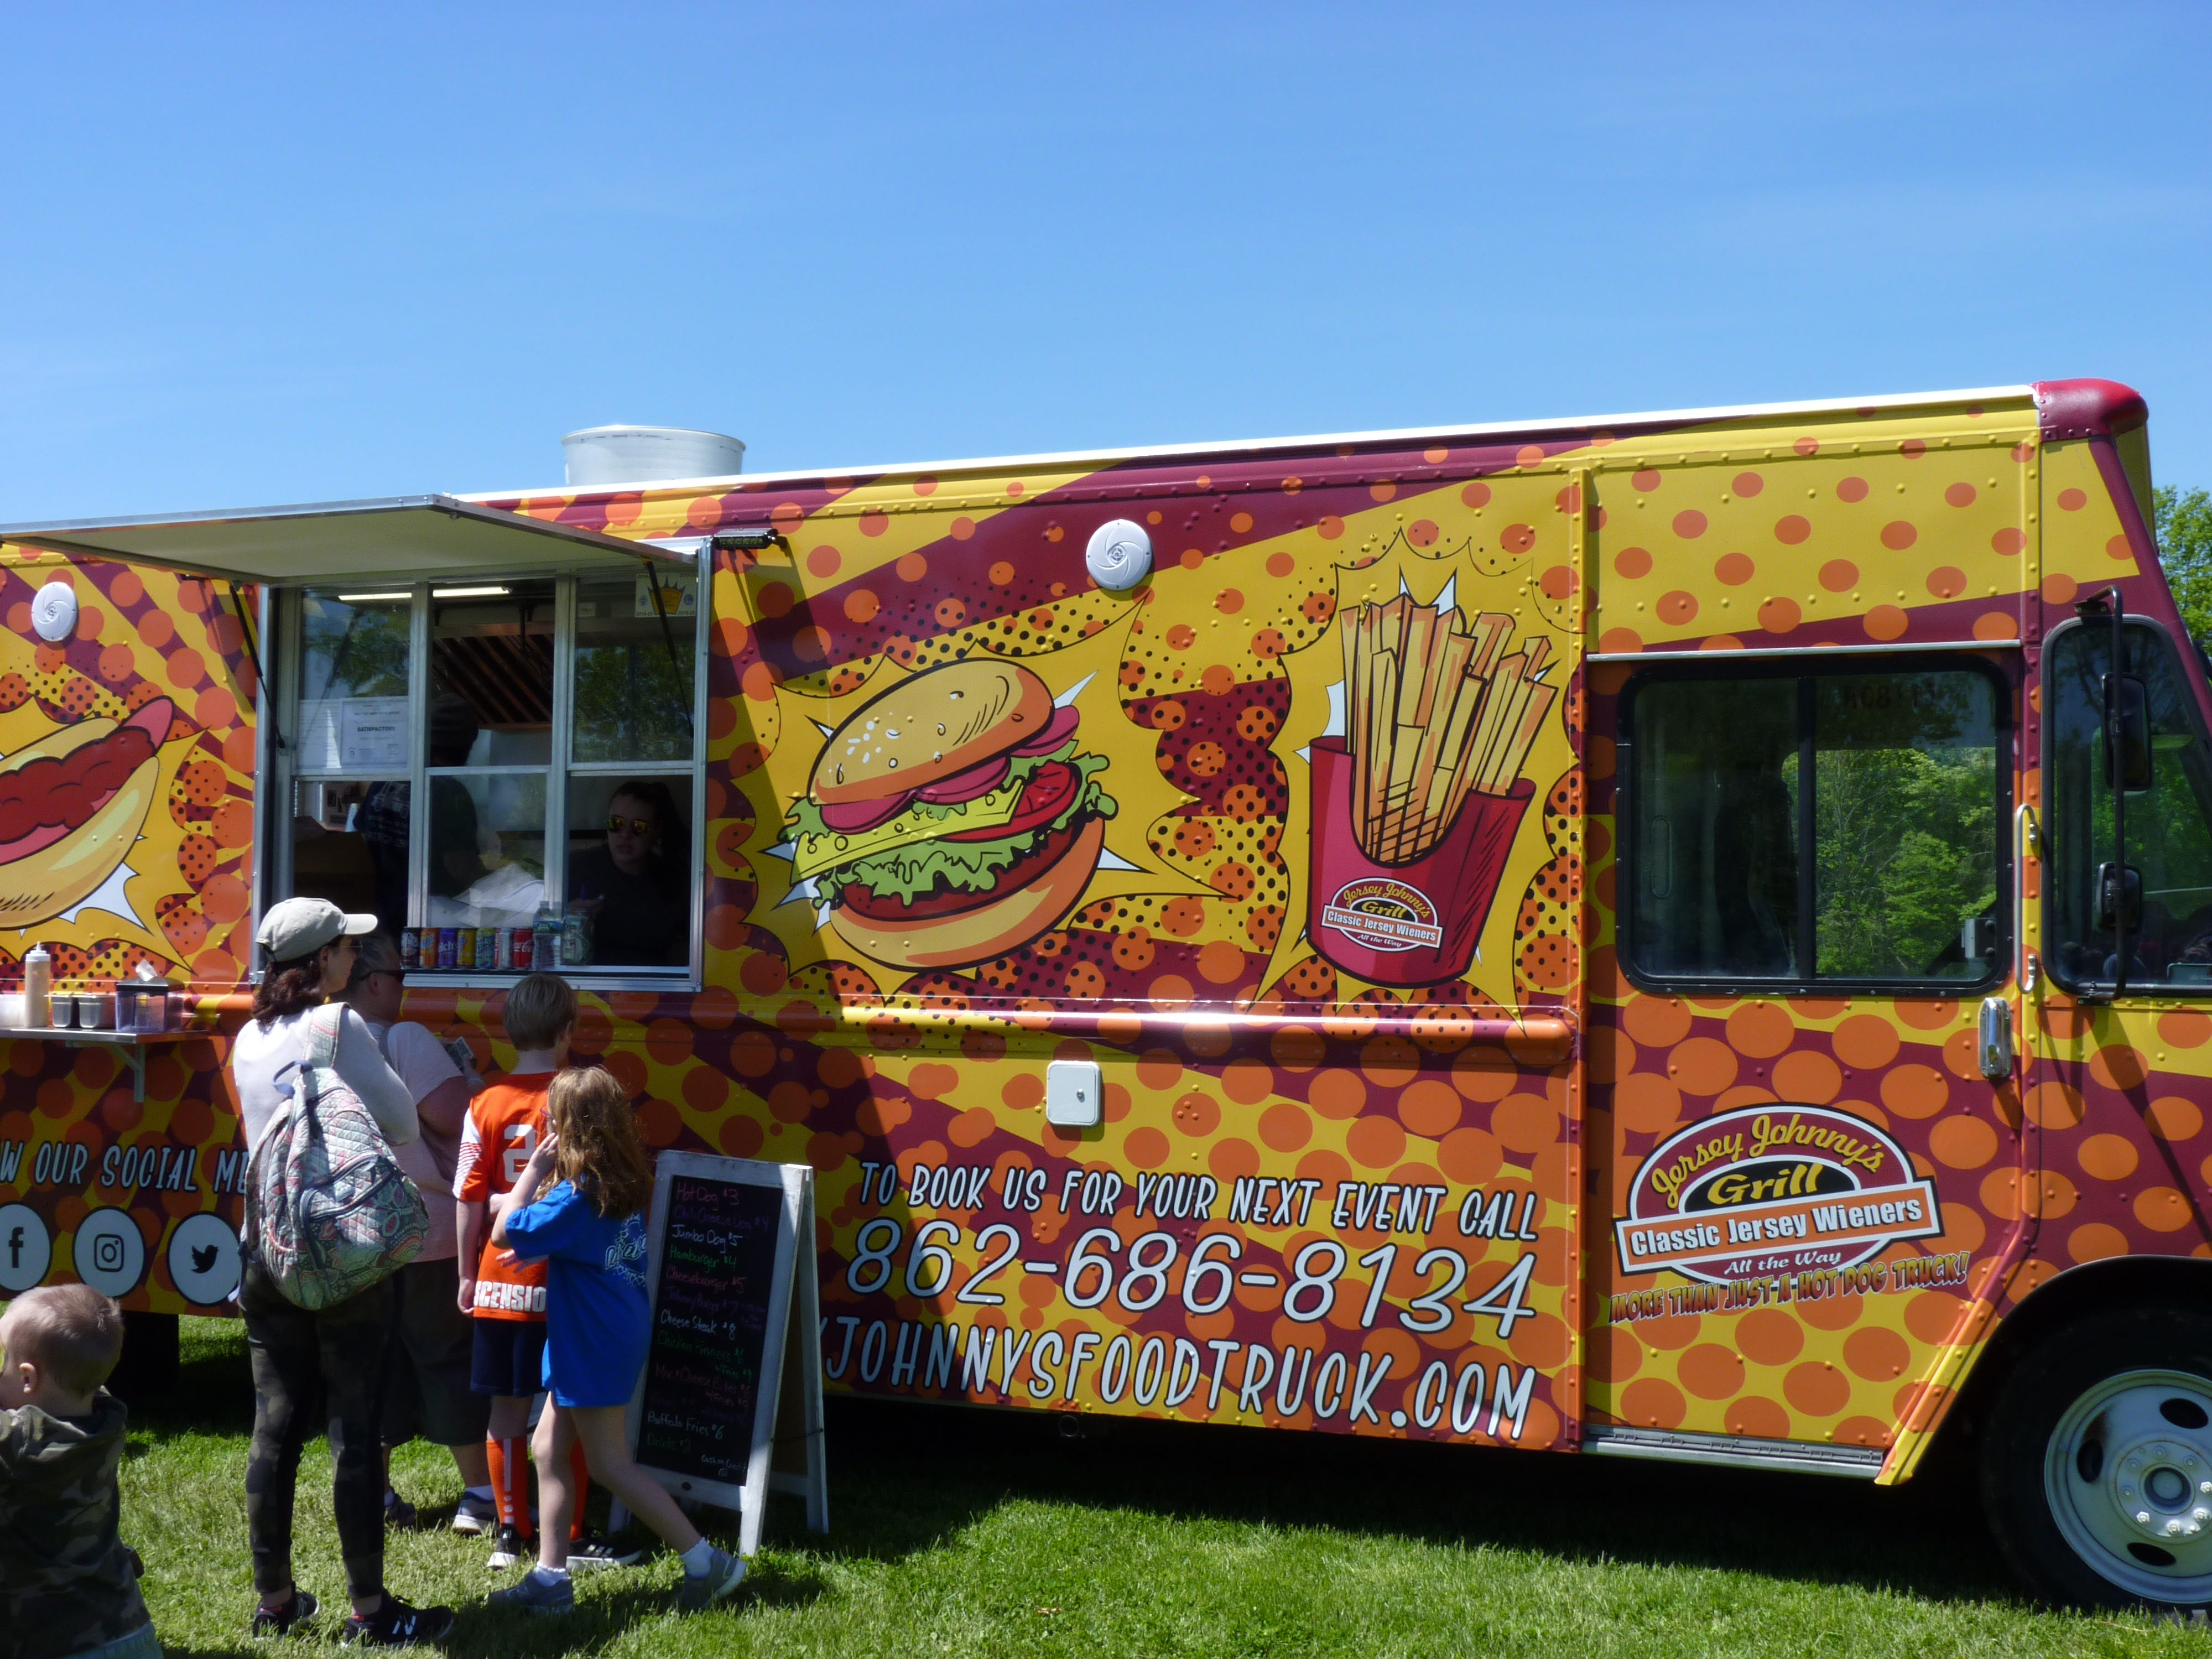 Several hundred people came out to White Oak Park in Branchburg on Saturday, May 11 to enjoy live music, Mother's Day sales and food from dozens of food trucks for the Food Truck and Music Festival organized by Just Jersey Fest. N